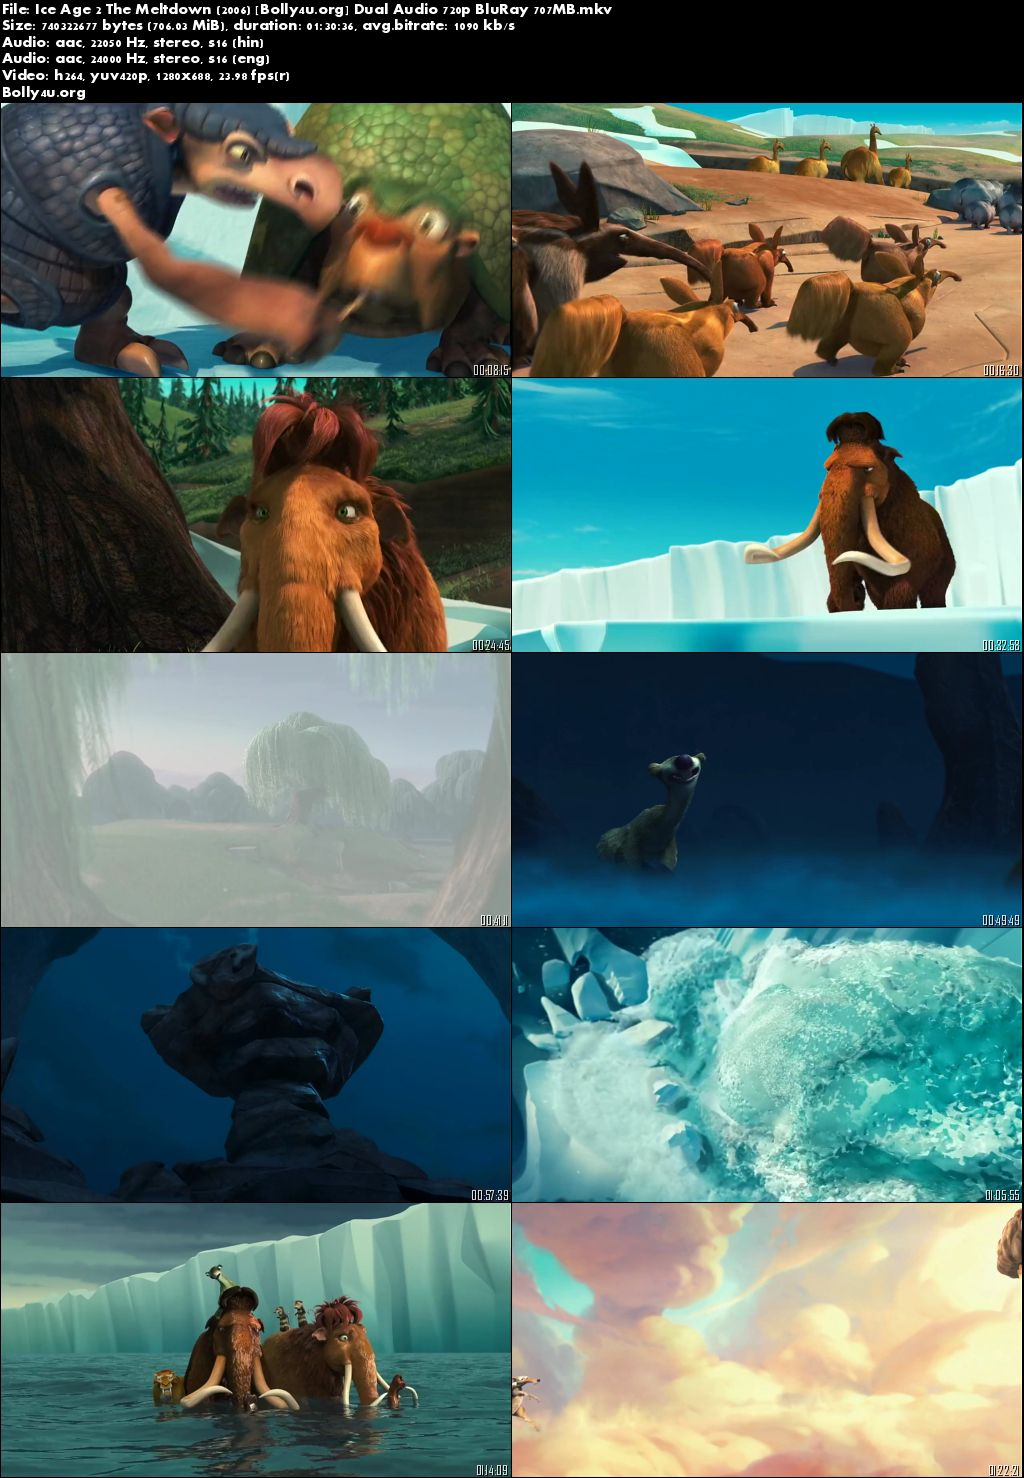 Ice Age 2 The Meltdown 2006 BluRay 700MB Hindi Dual Audio 720p Download